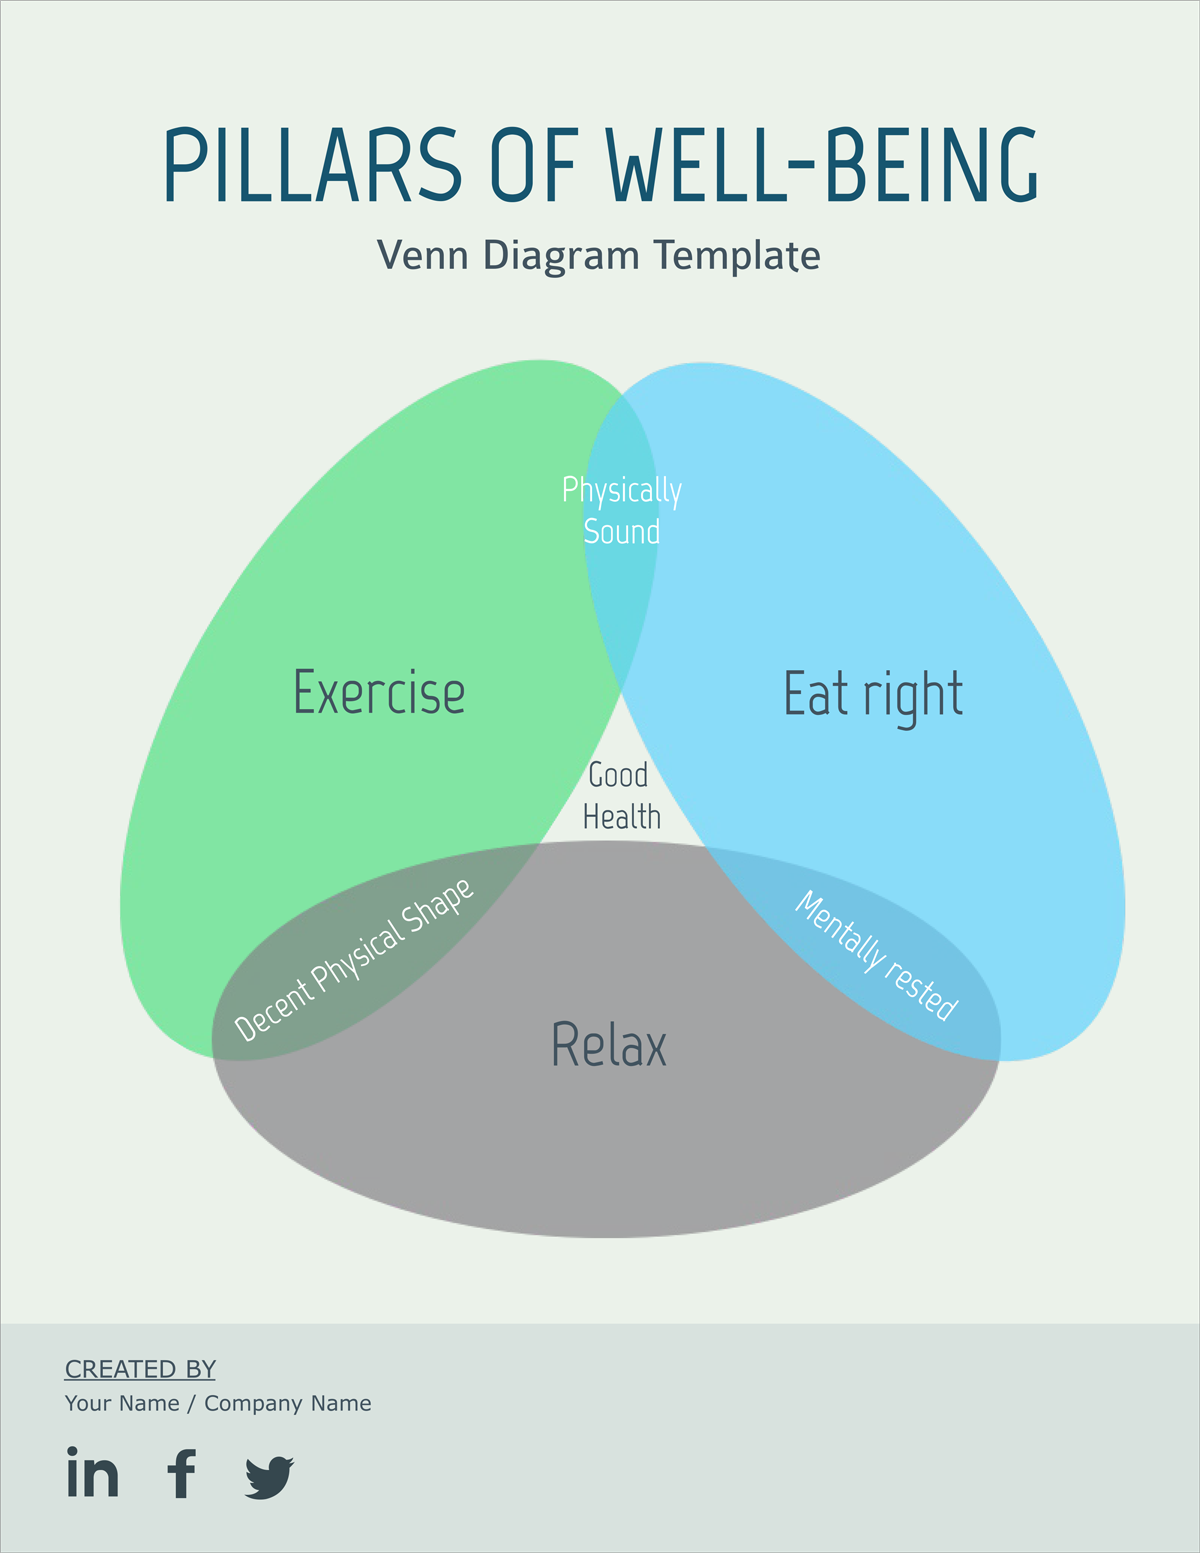 Pillars-of-Well-Being-Triangle-Venn-Diagram template